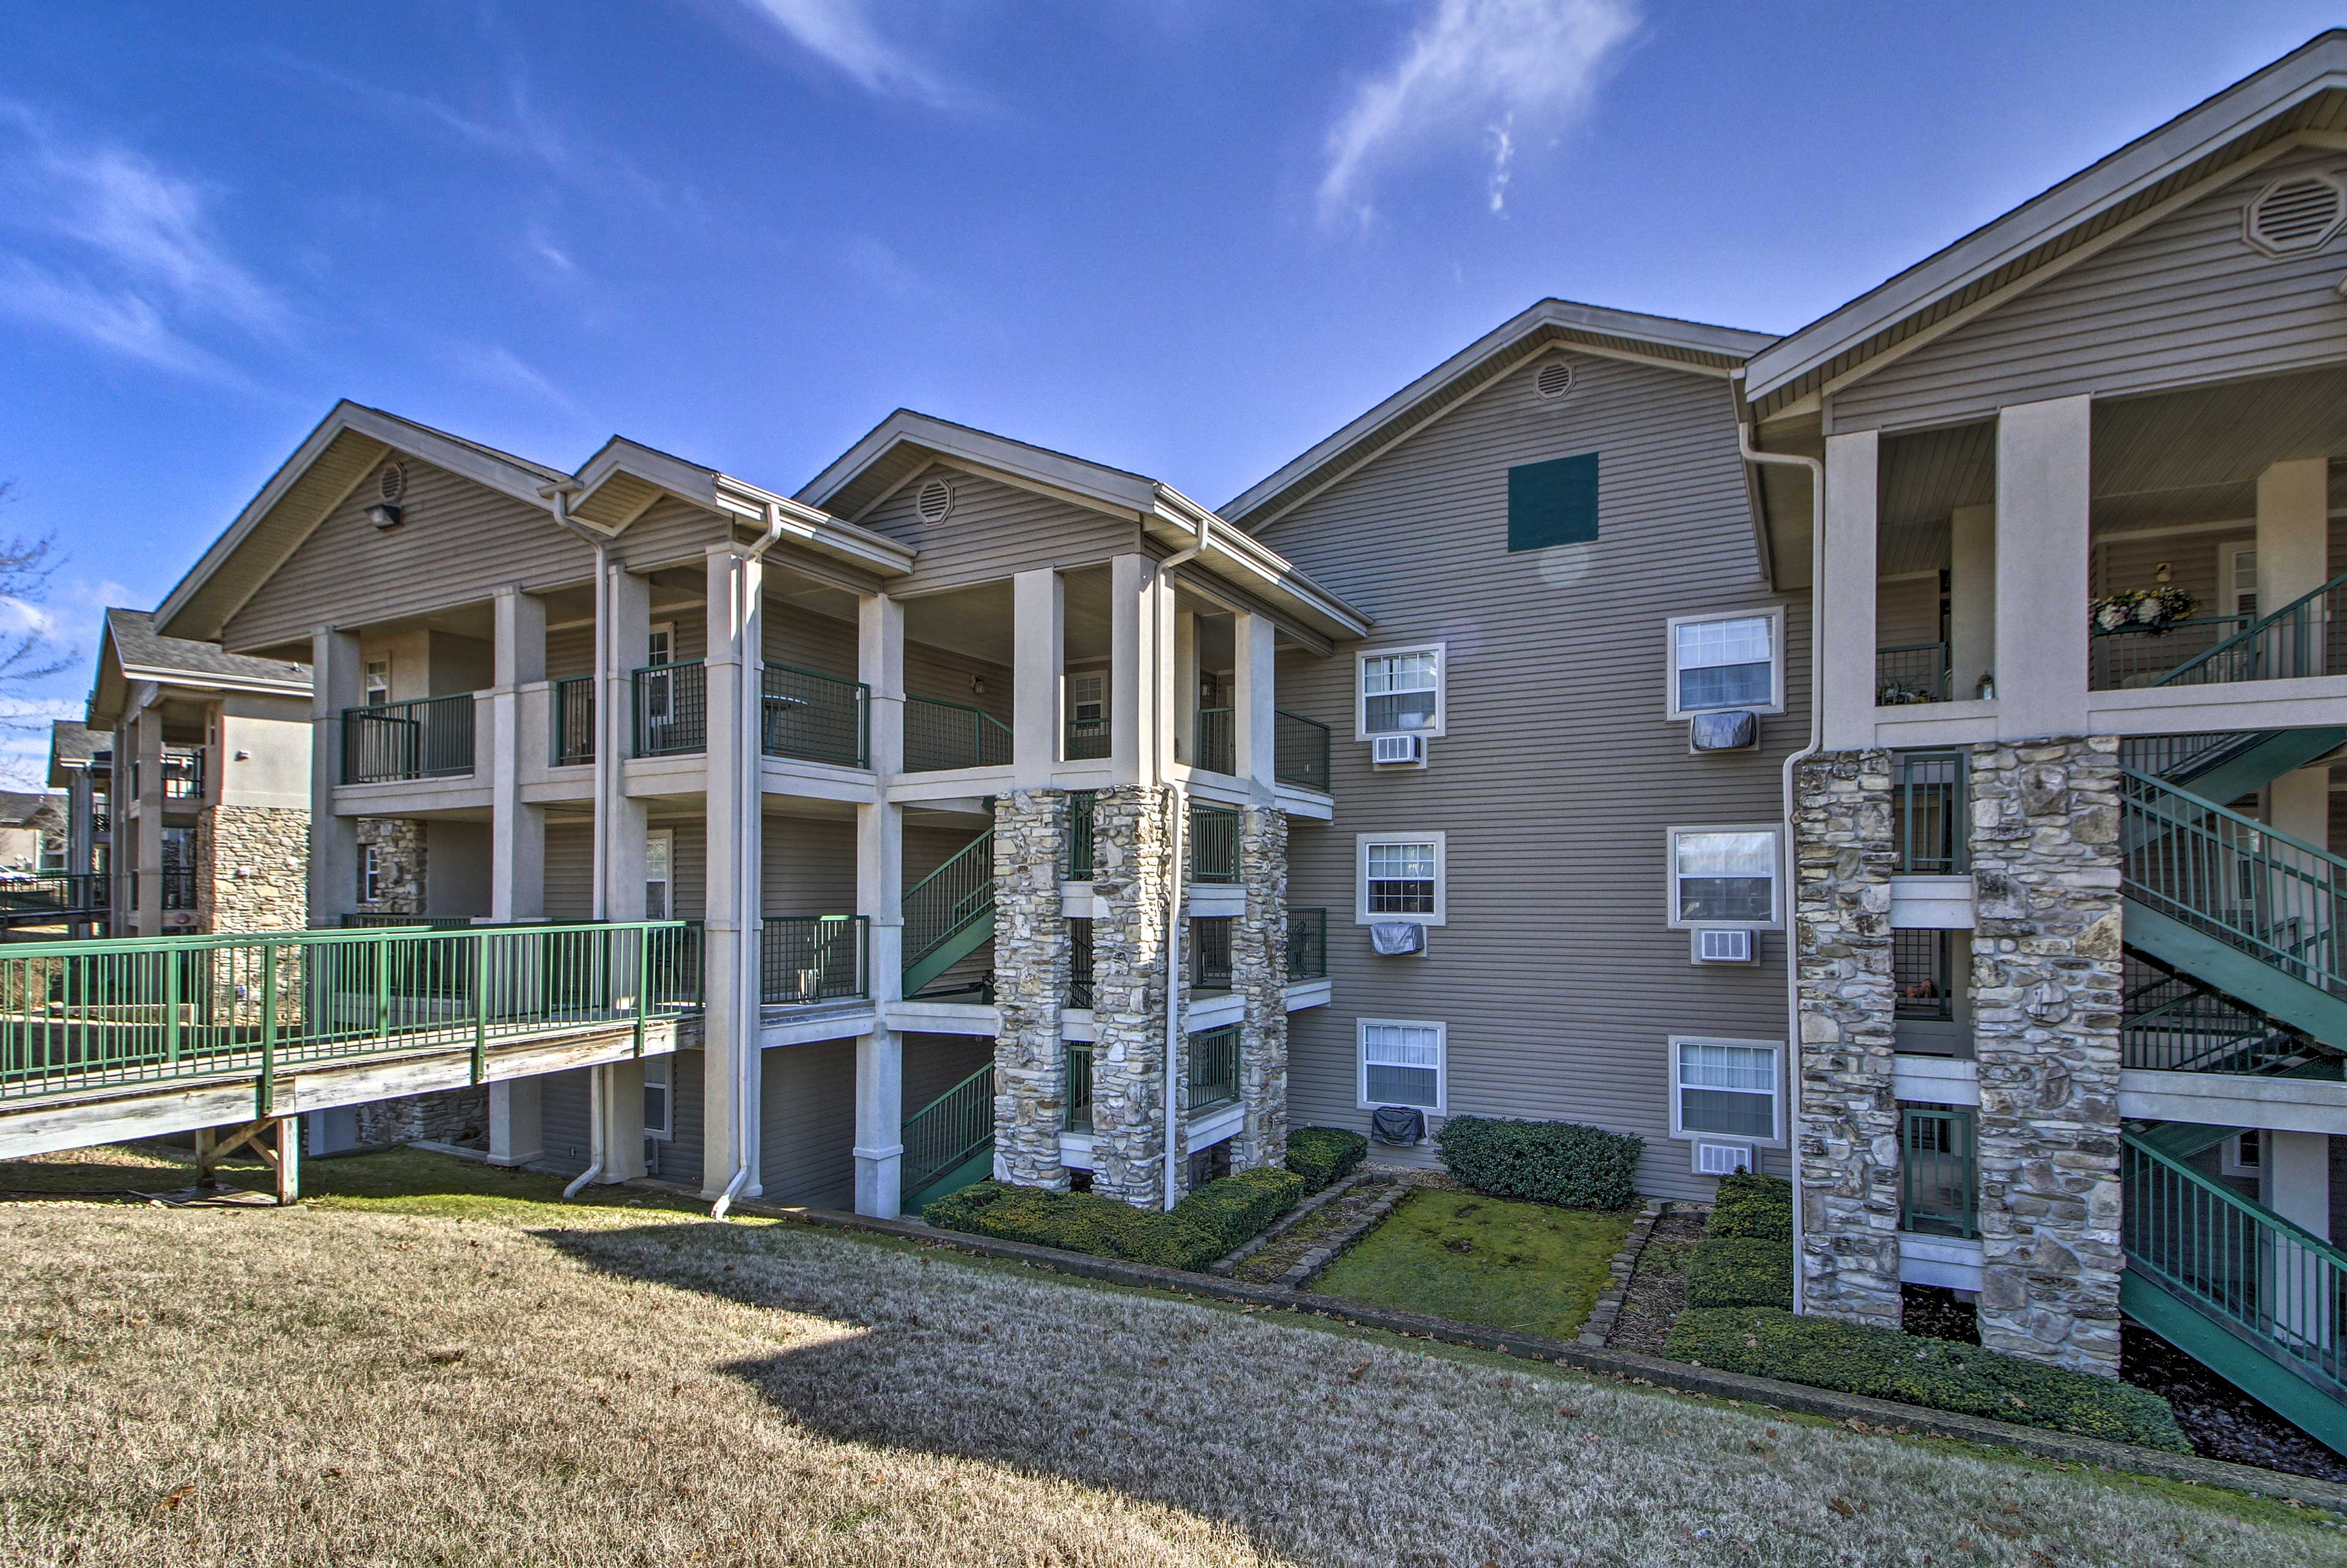 This condo complex is just 2 miles from Branson Landing.